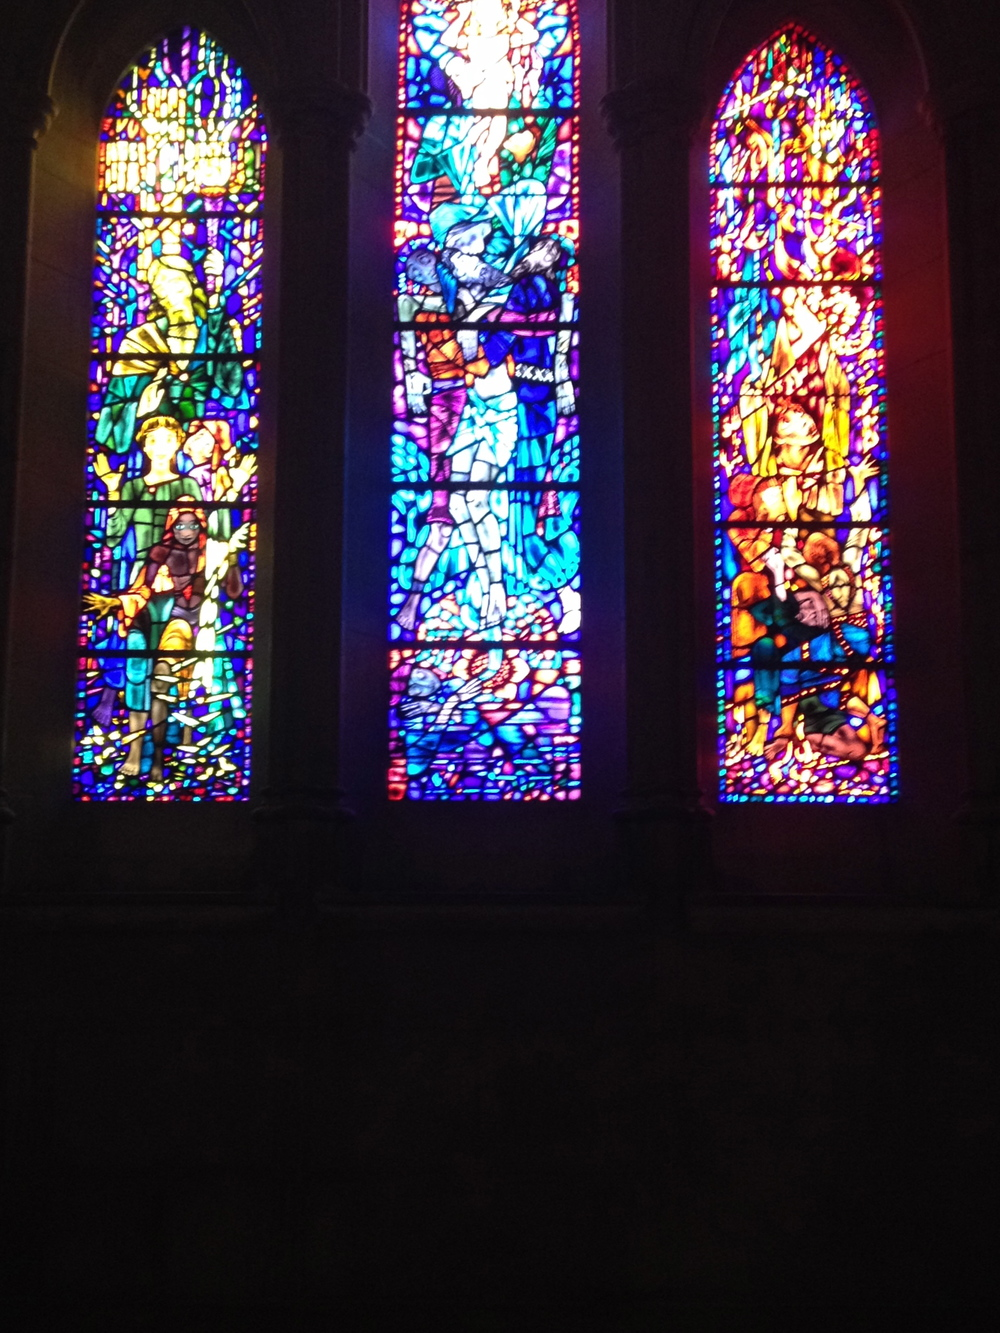 more stained glass windows from the incredible National Cathedral in Washington DC.